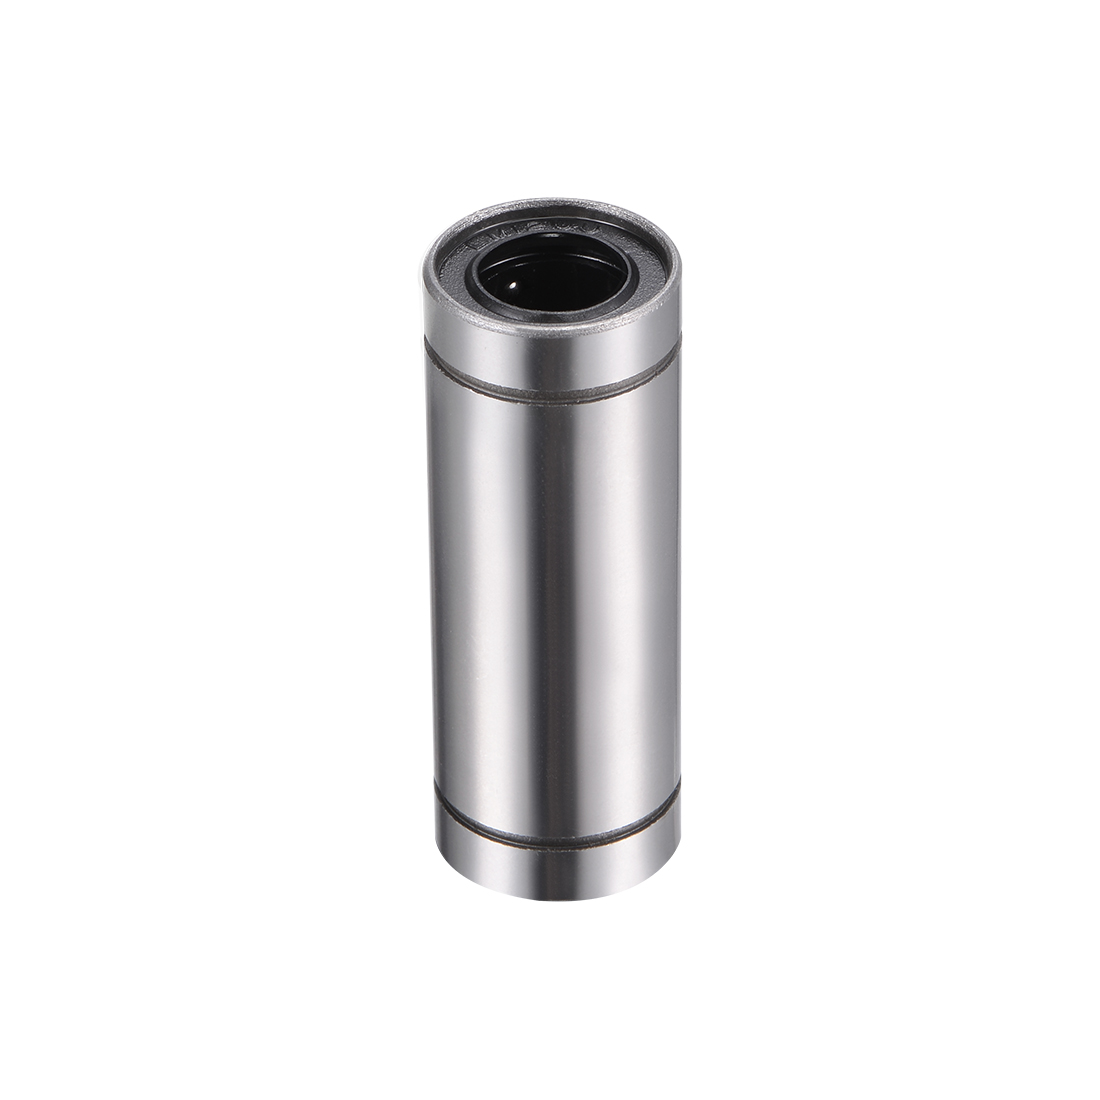 12mm Linear Ball Bearings Extra Long LM12LUU, 12mm Bore, 21mm OD, 57mm Length